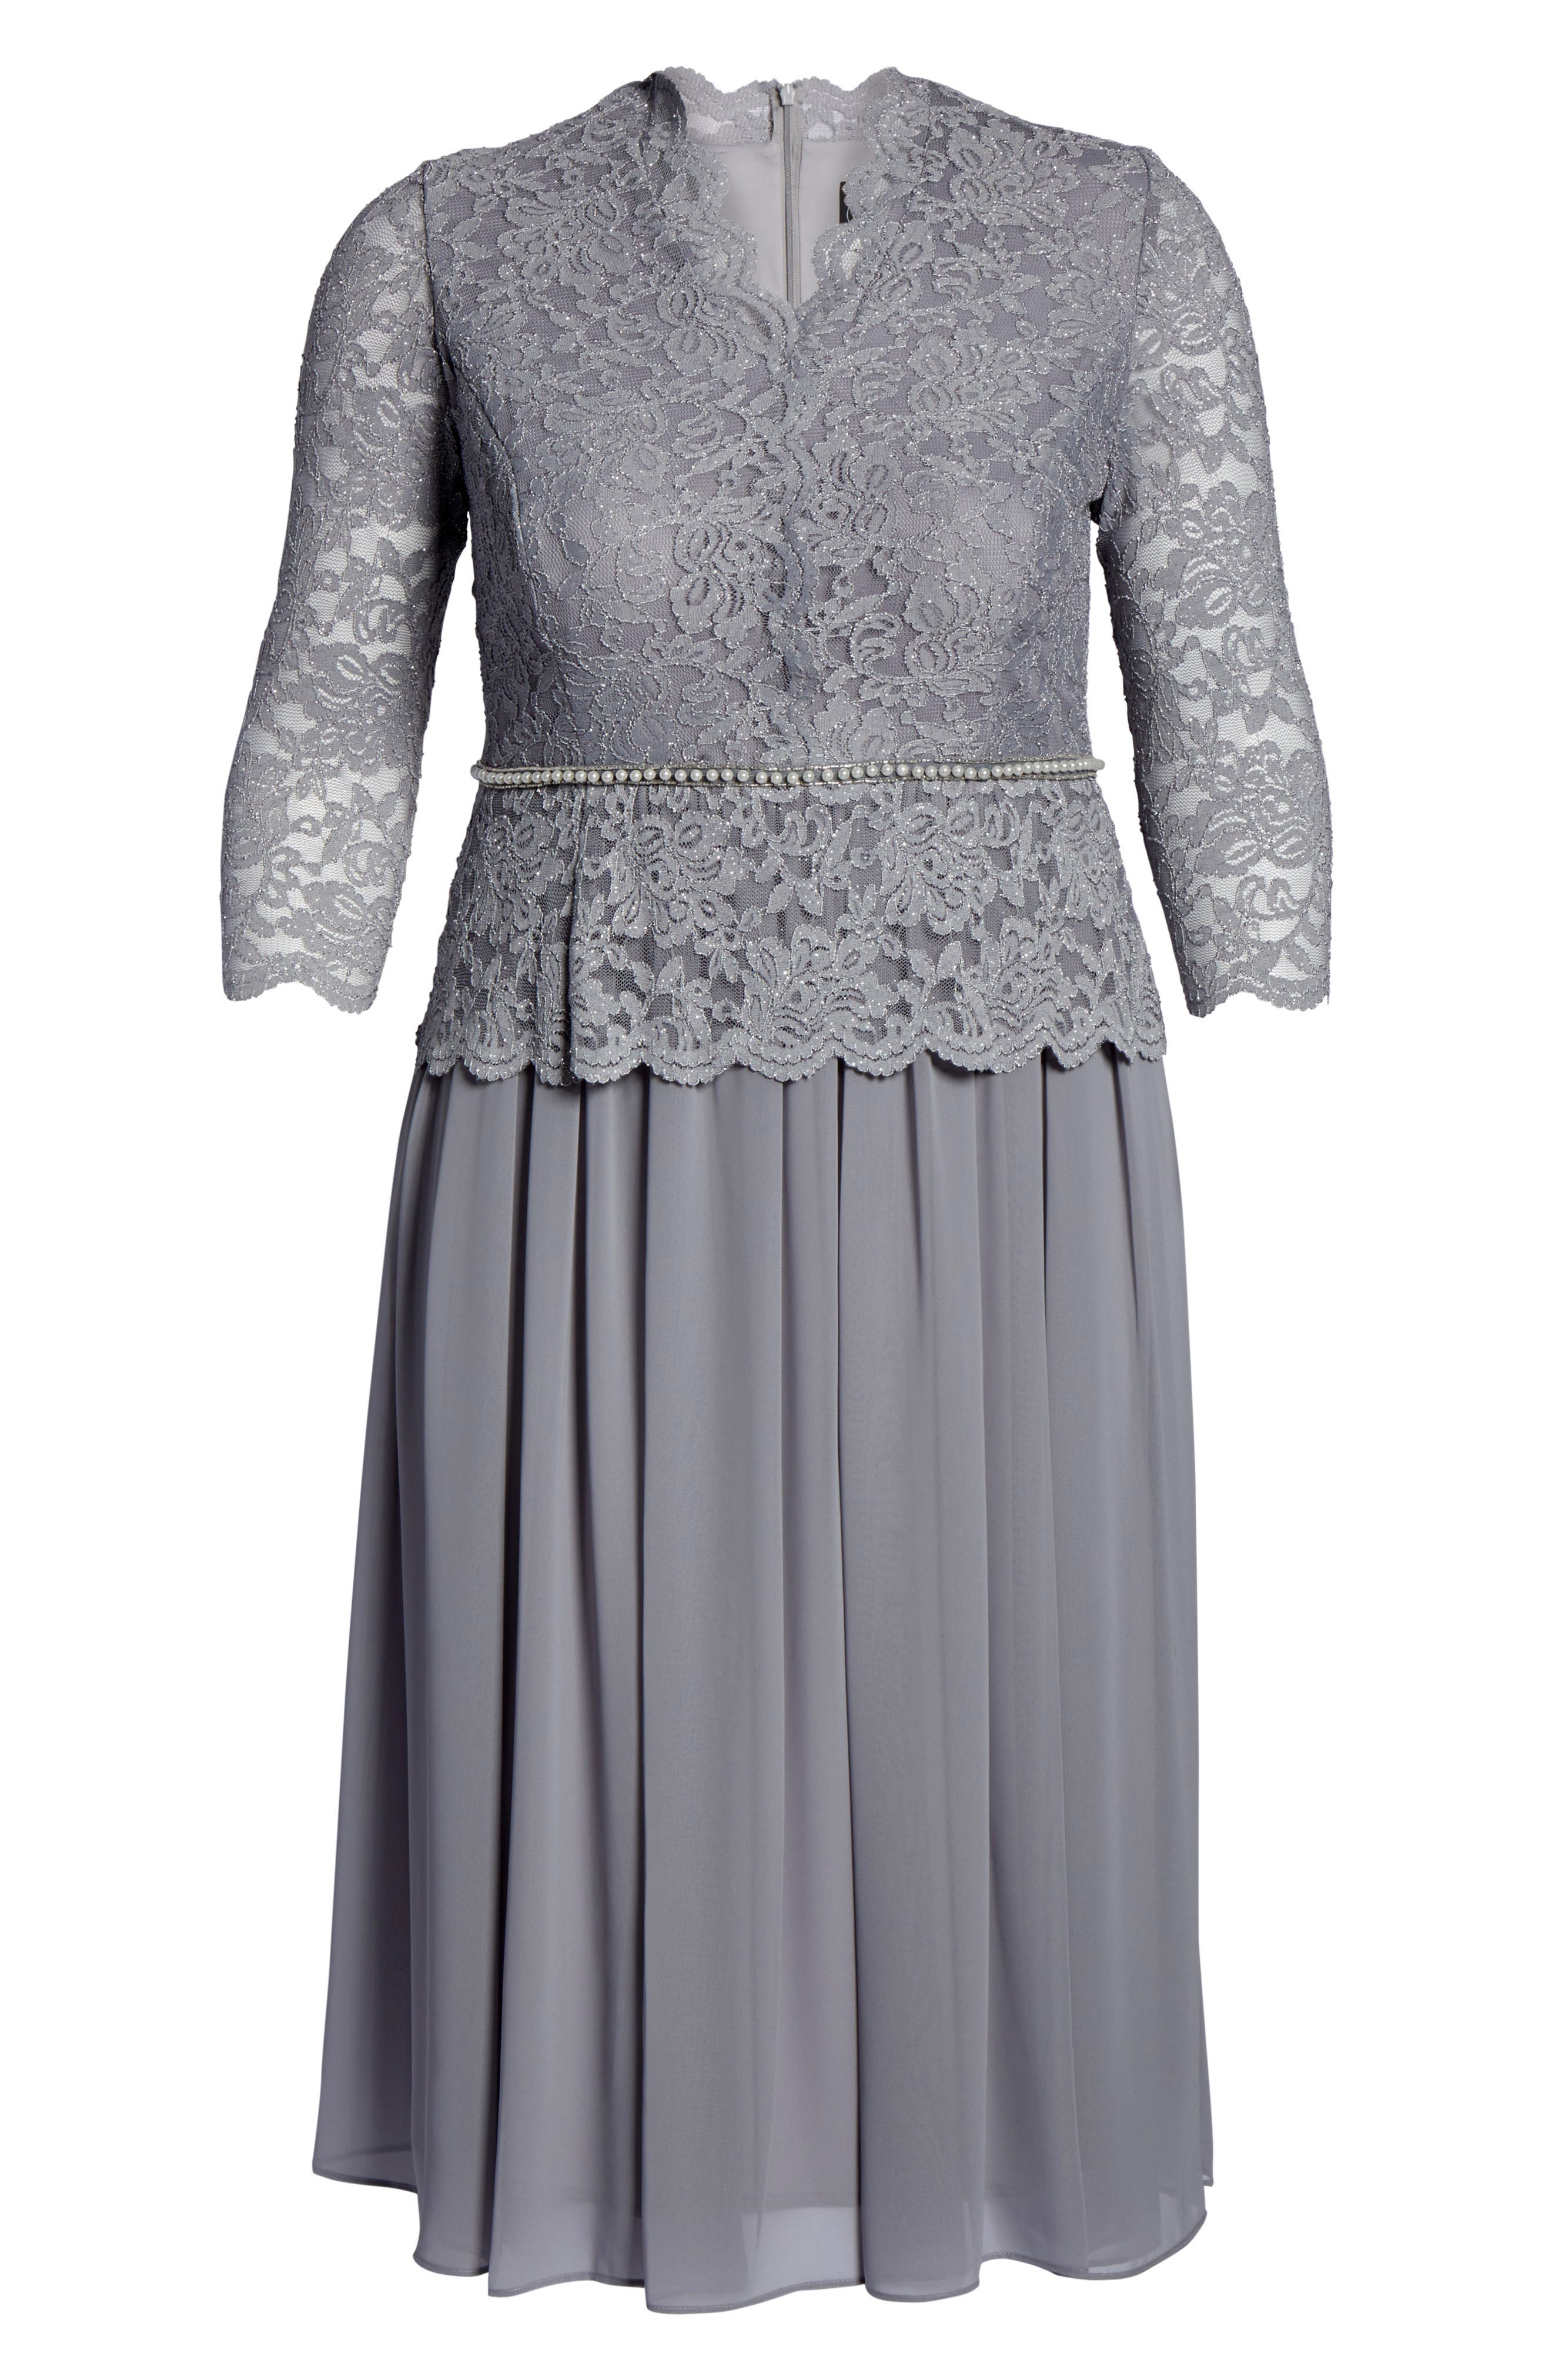 ALEX EVENINGS,                             Embellished Side Pleat Sweetheart Gown,                             Alternate thumbnail 6, color,                             CHARCOAL